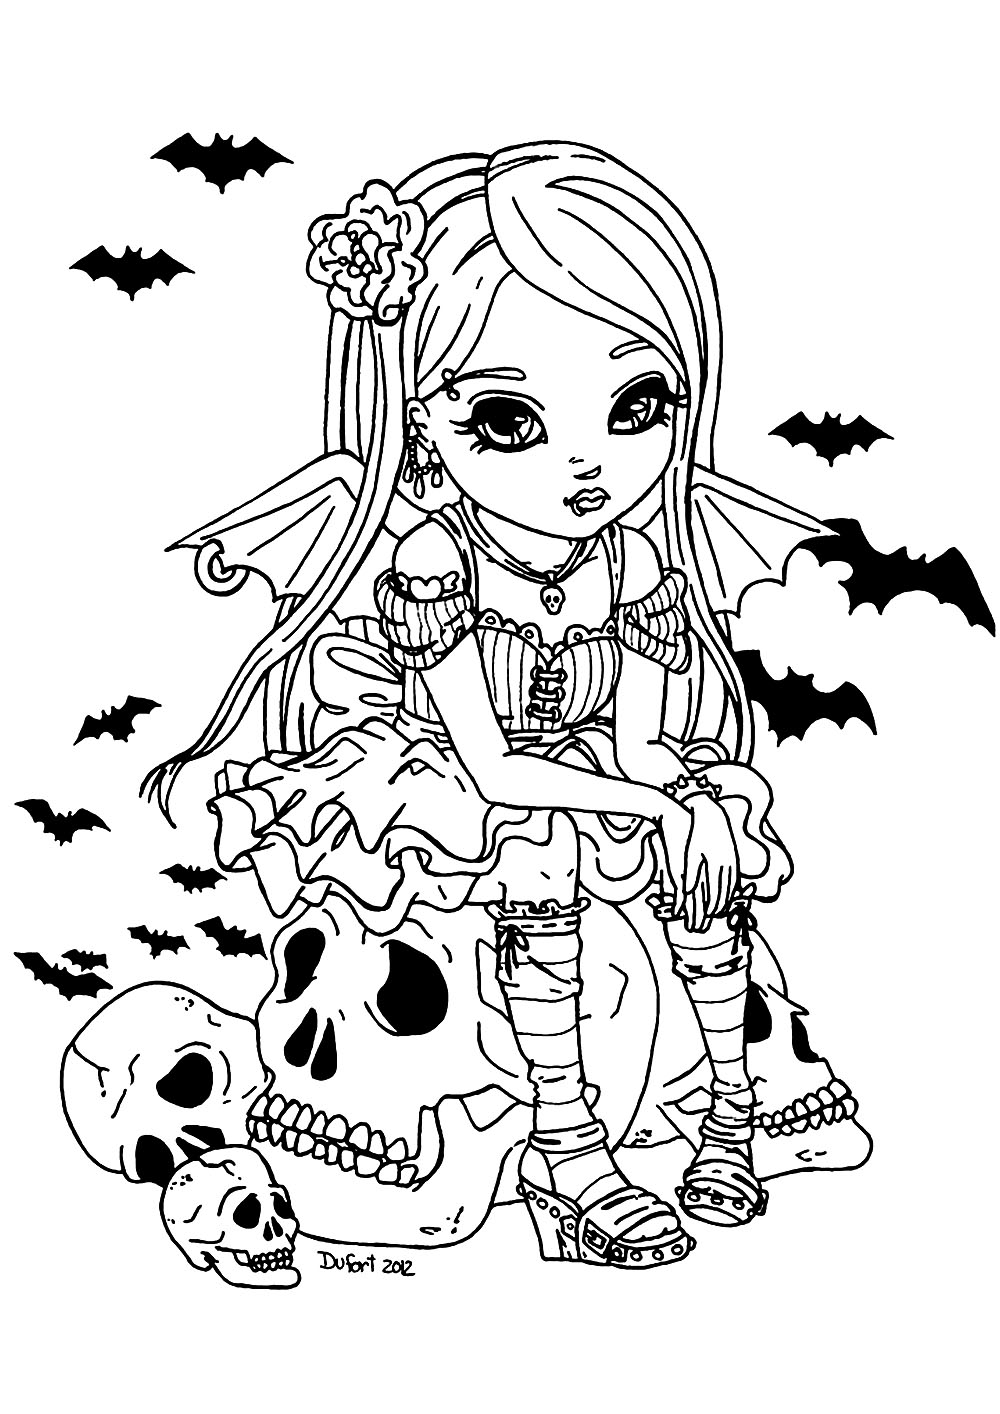 Color This Cute Little Vampire Girl Sitting On A Big Skull Witch Coloring Pages Halloween Coloring Pages Skull Coloring Pages